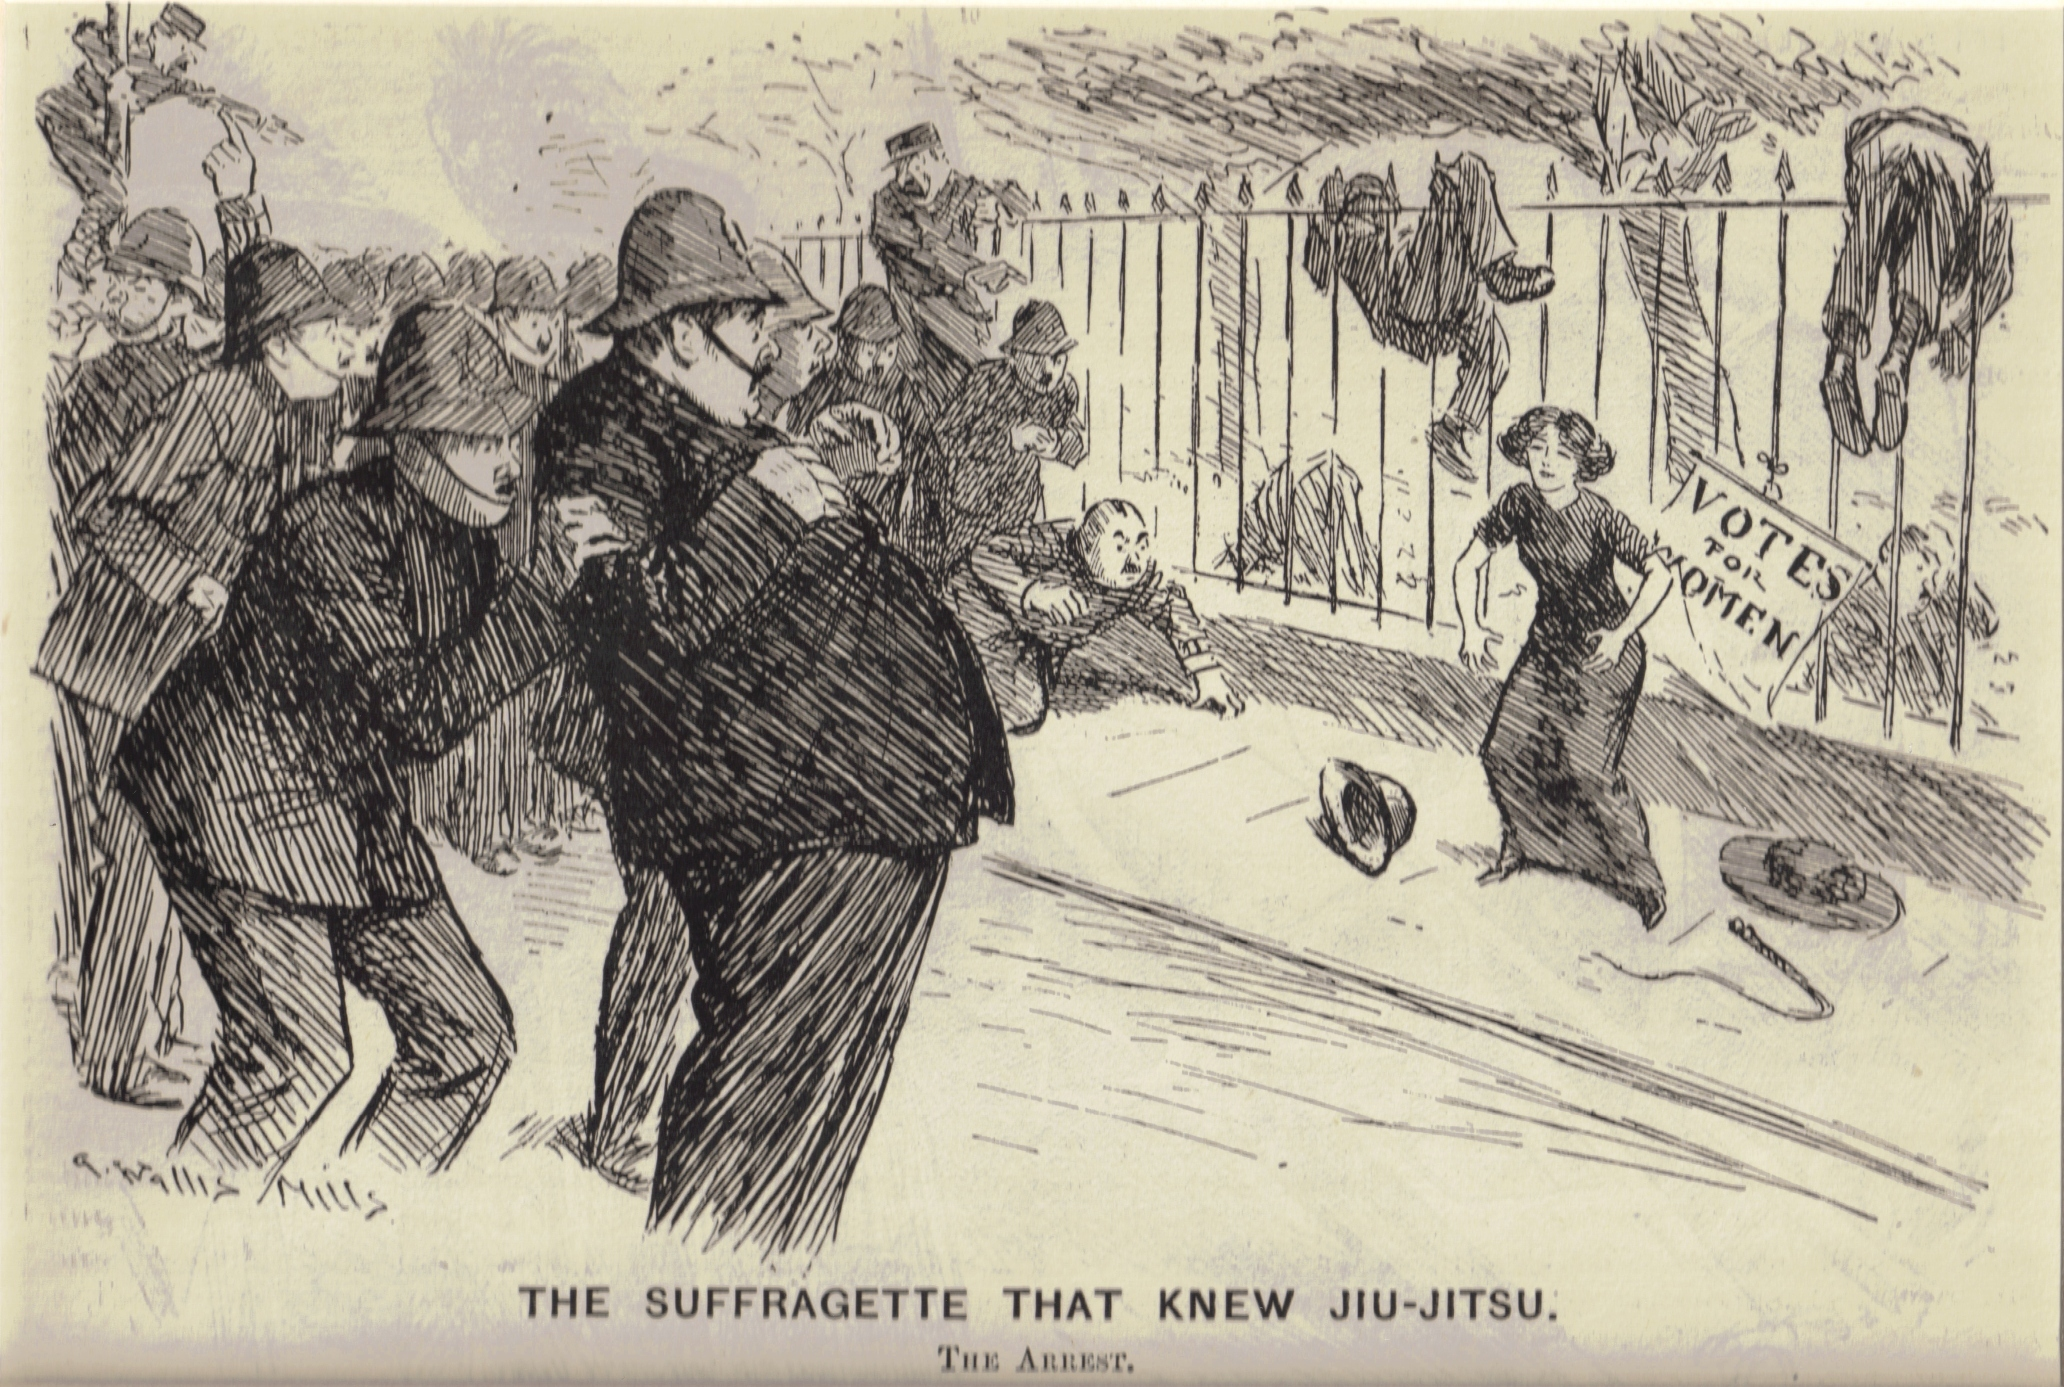 変換 ~ Suffragette-that-knew-jiujitsu